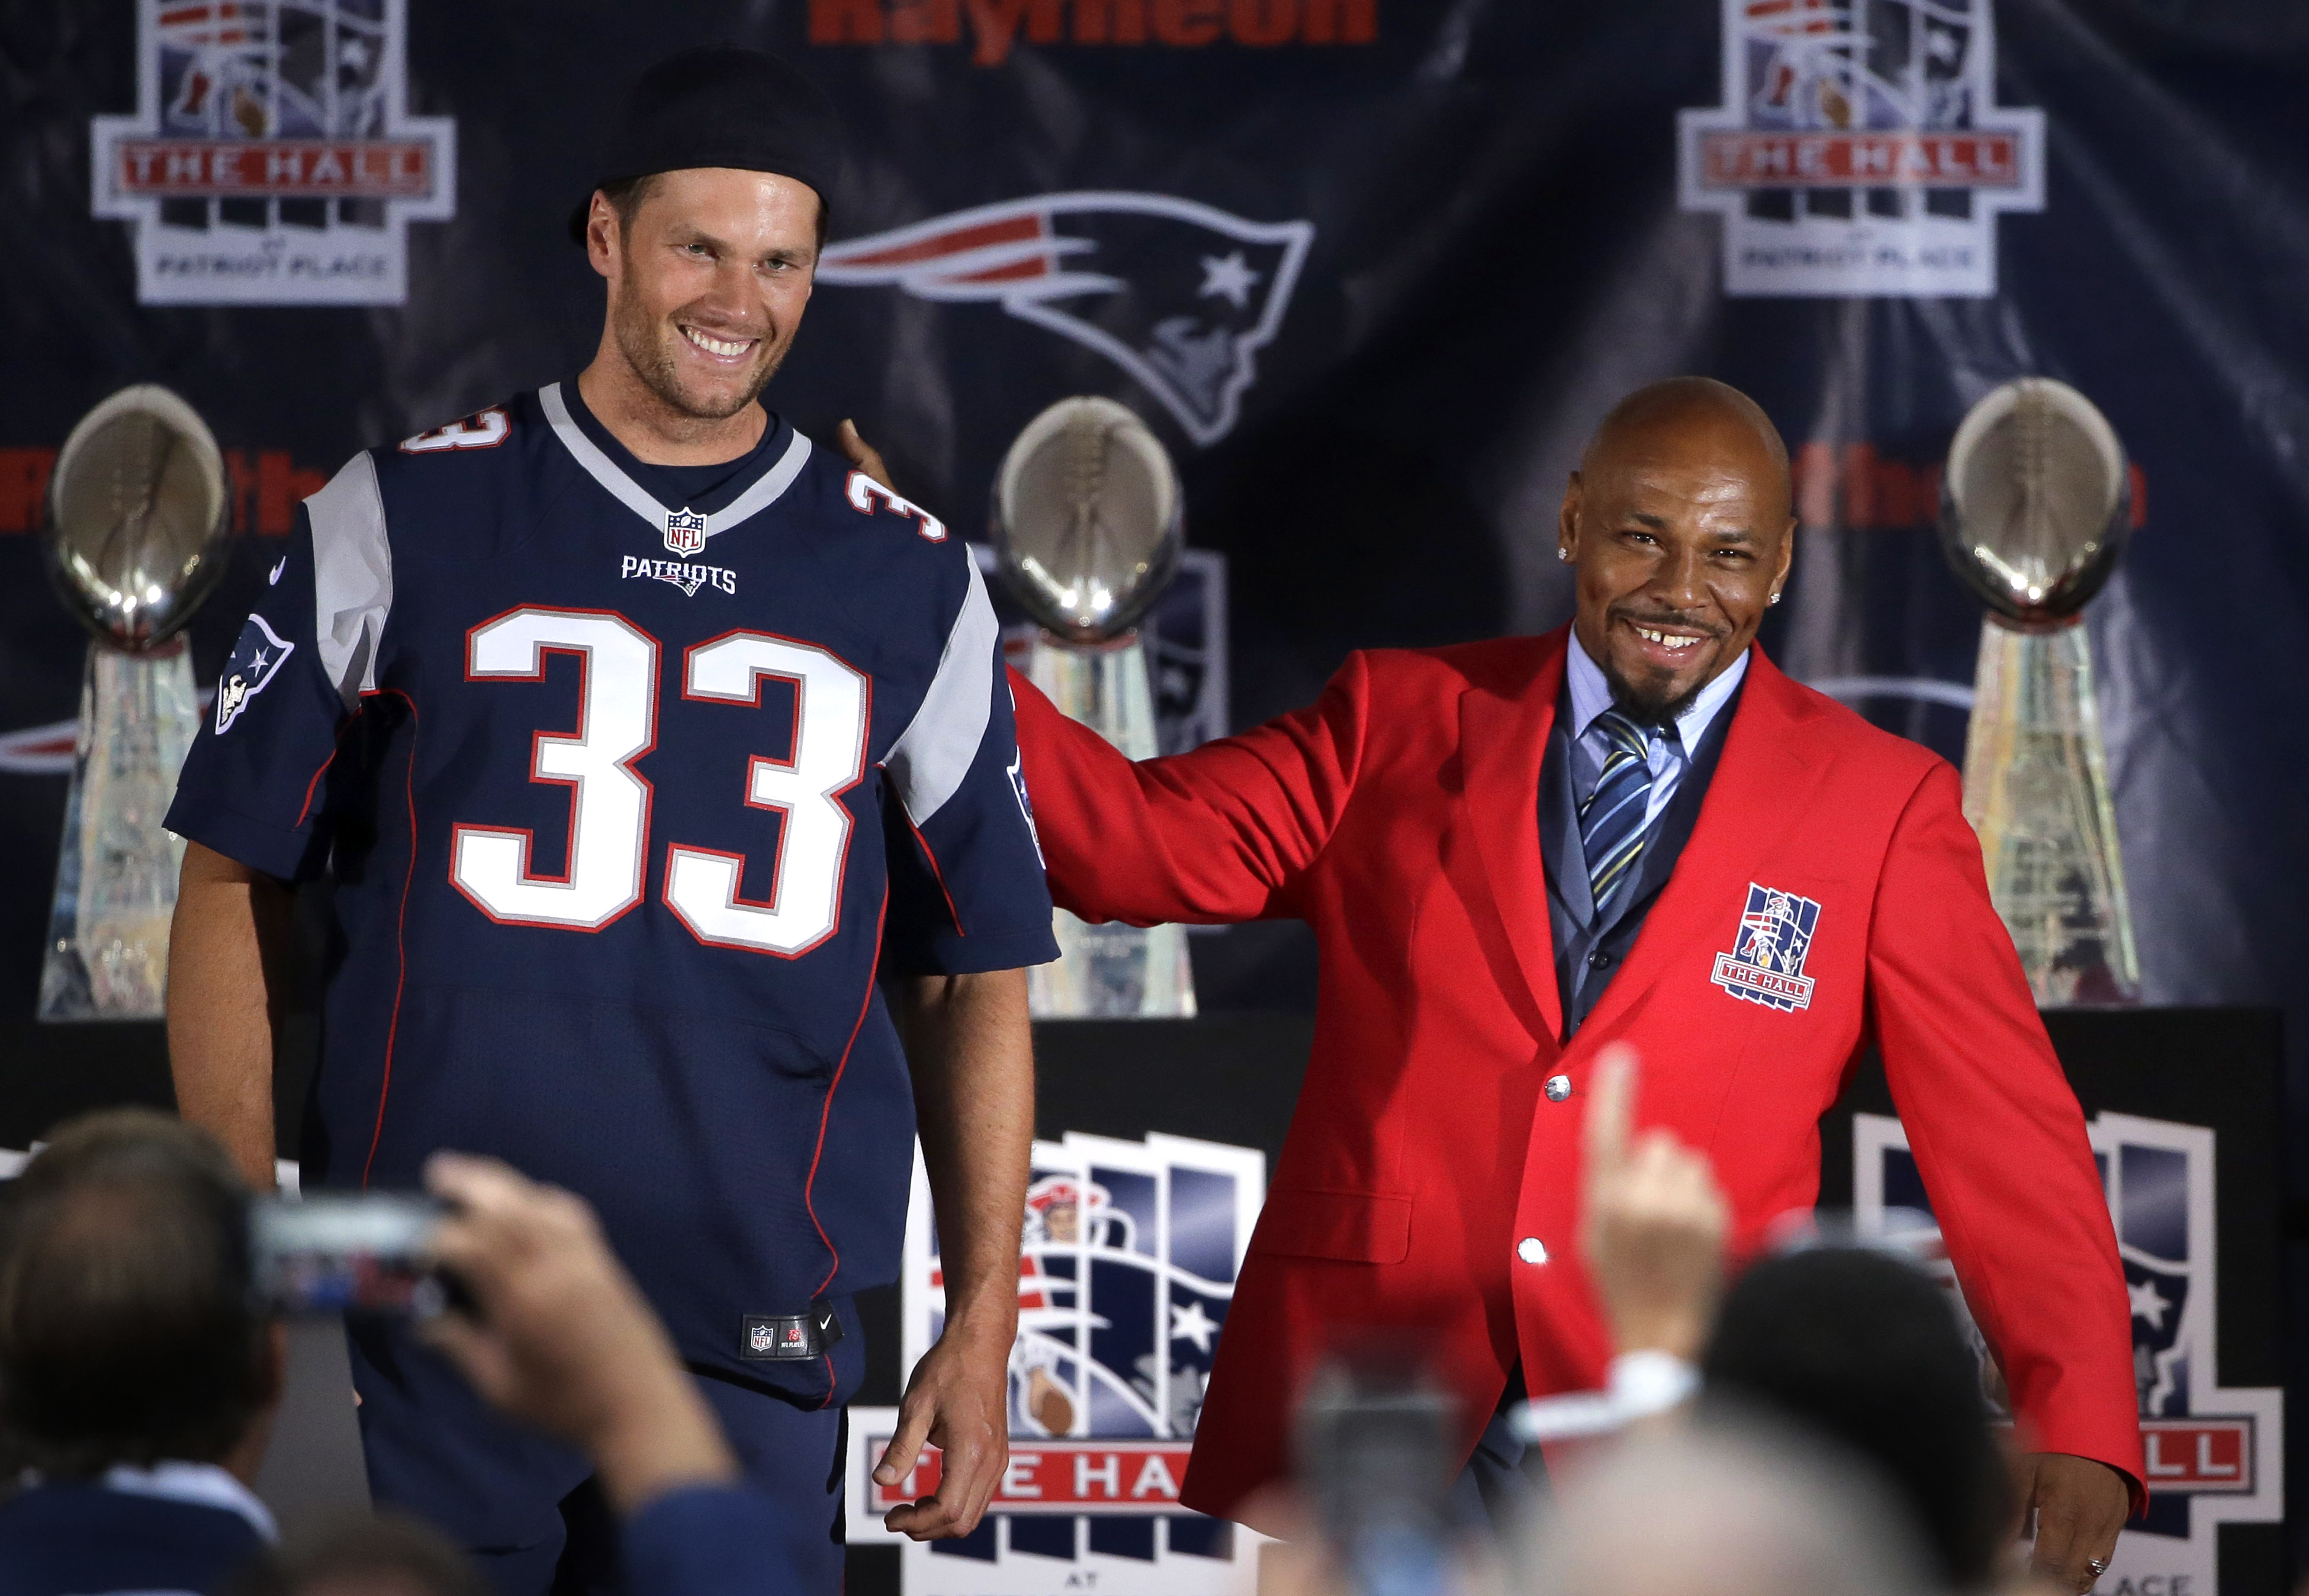 Tom Brady pitches in at ceremonies for Kevin Faulk - The Boston Globe